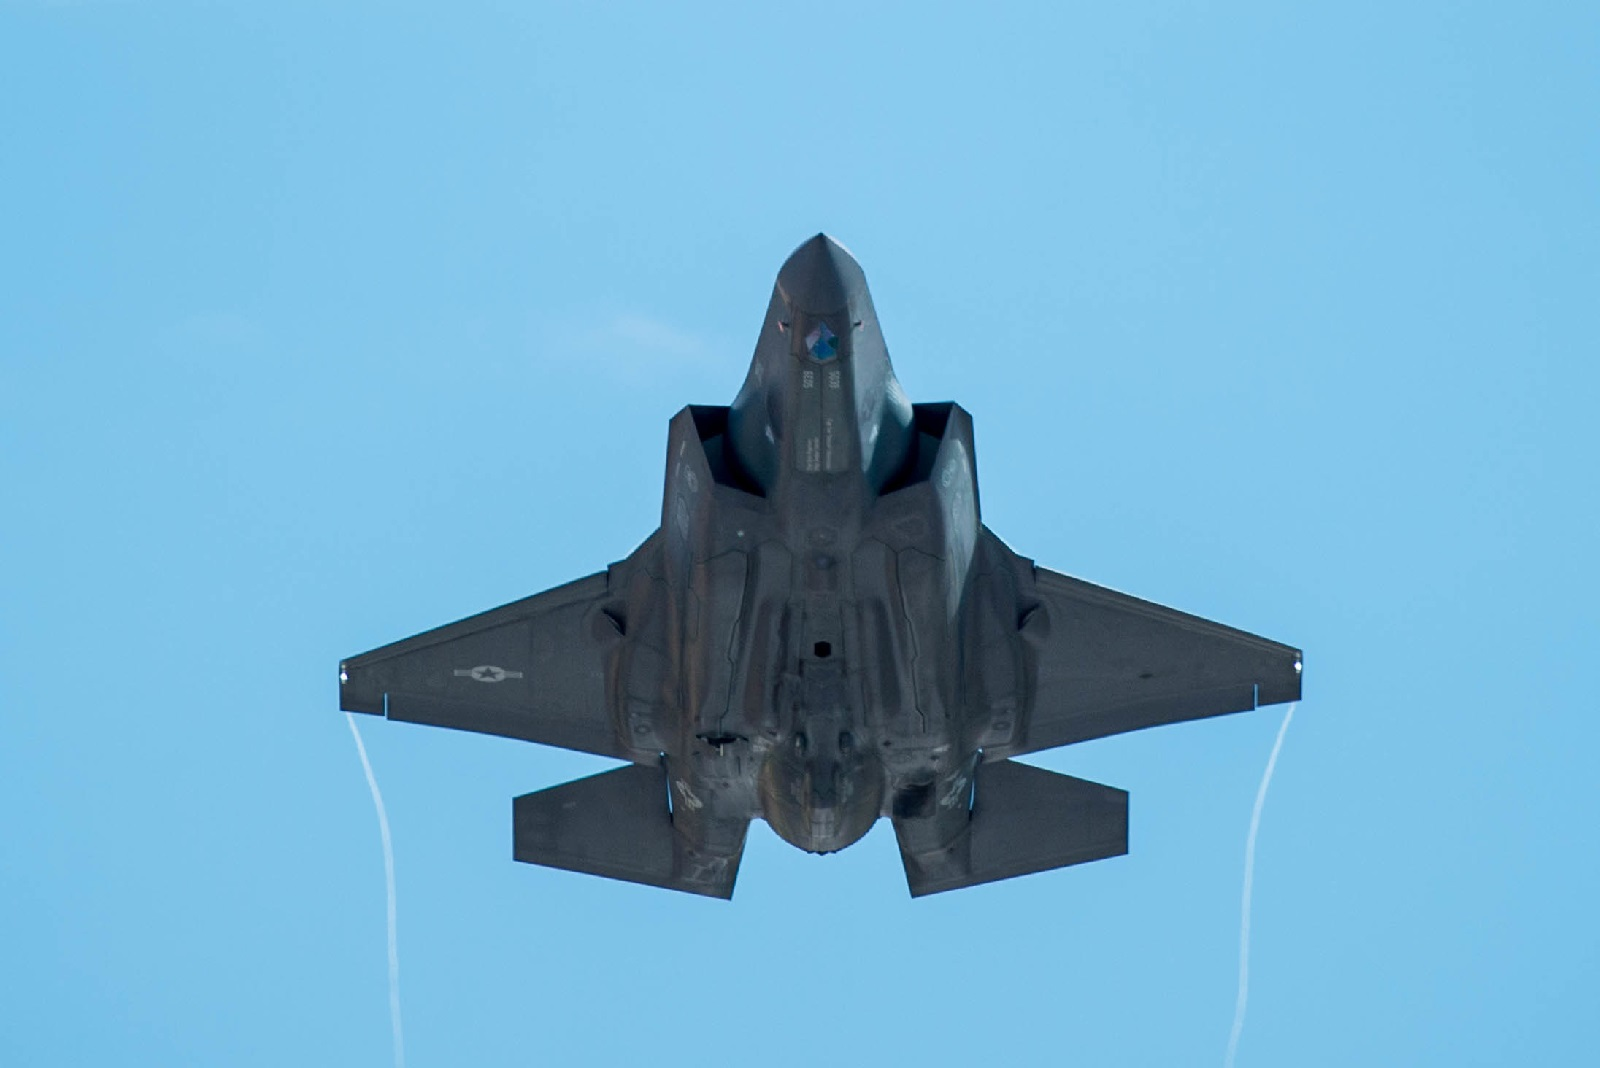 F-35 Or Not: This Country Needs 88 New Fighter Jets Before